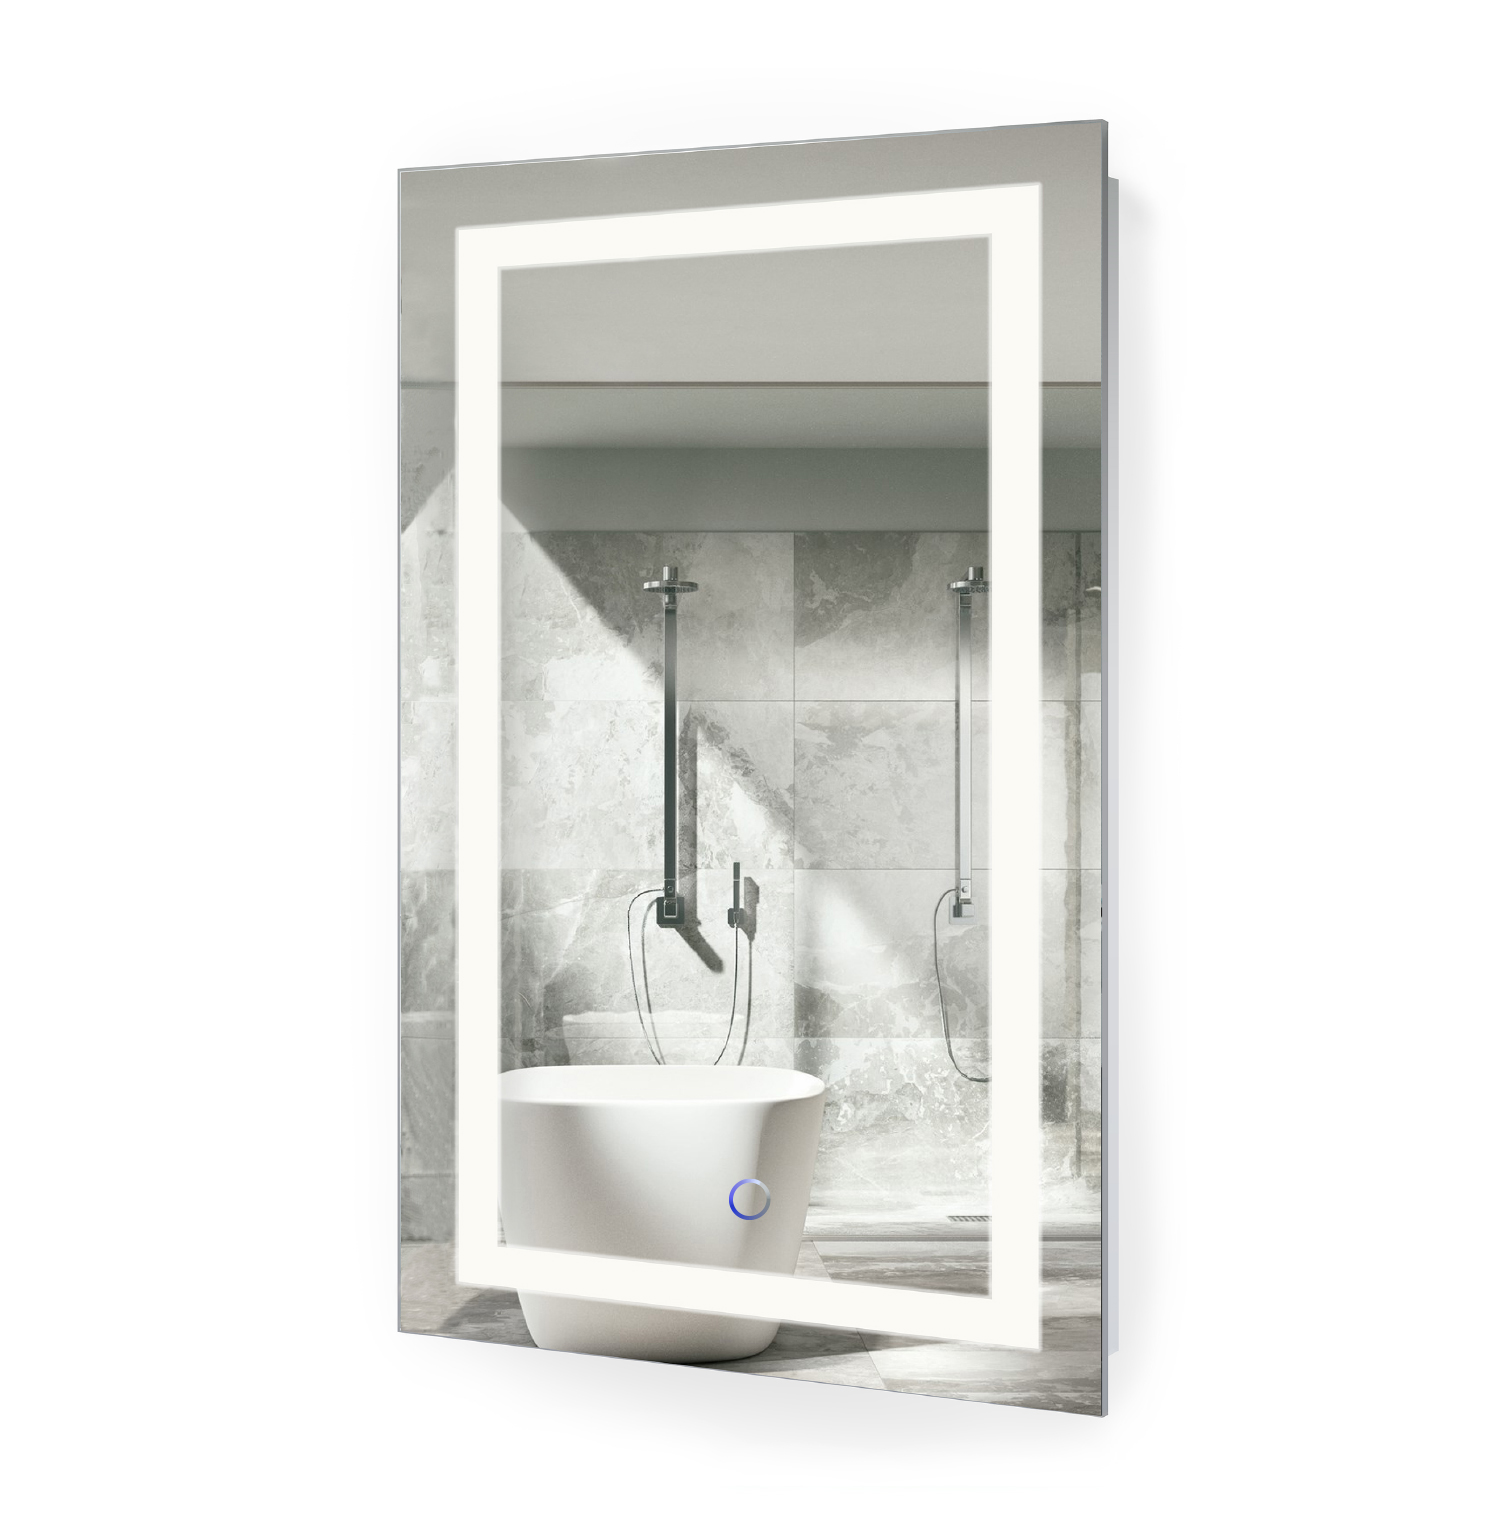 Icon 20″ x 32″ LED Bathroom Mirror With Dimmer & Defogger| Lighted Vanity Mirror